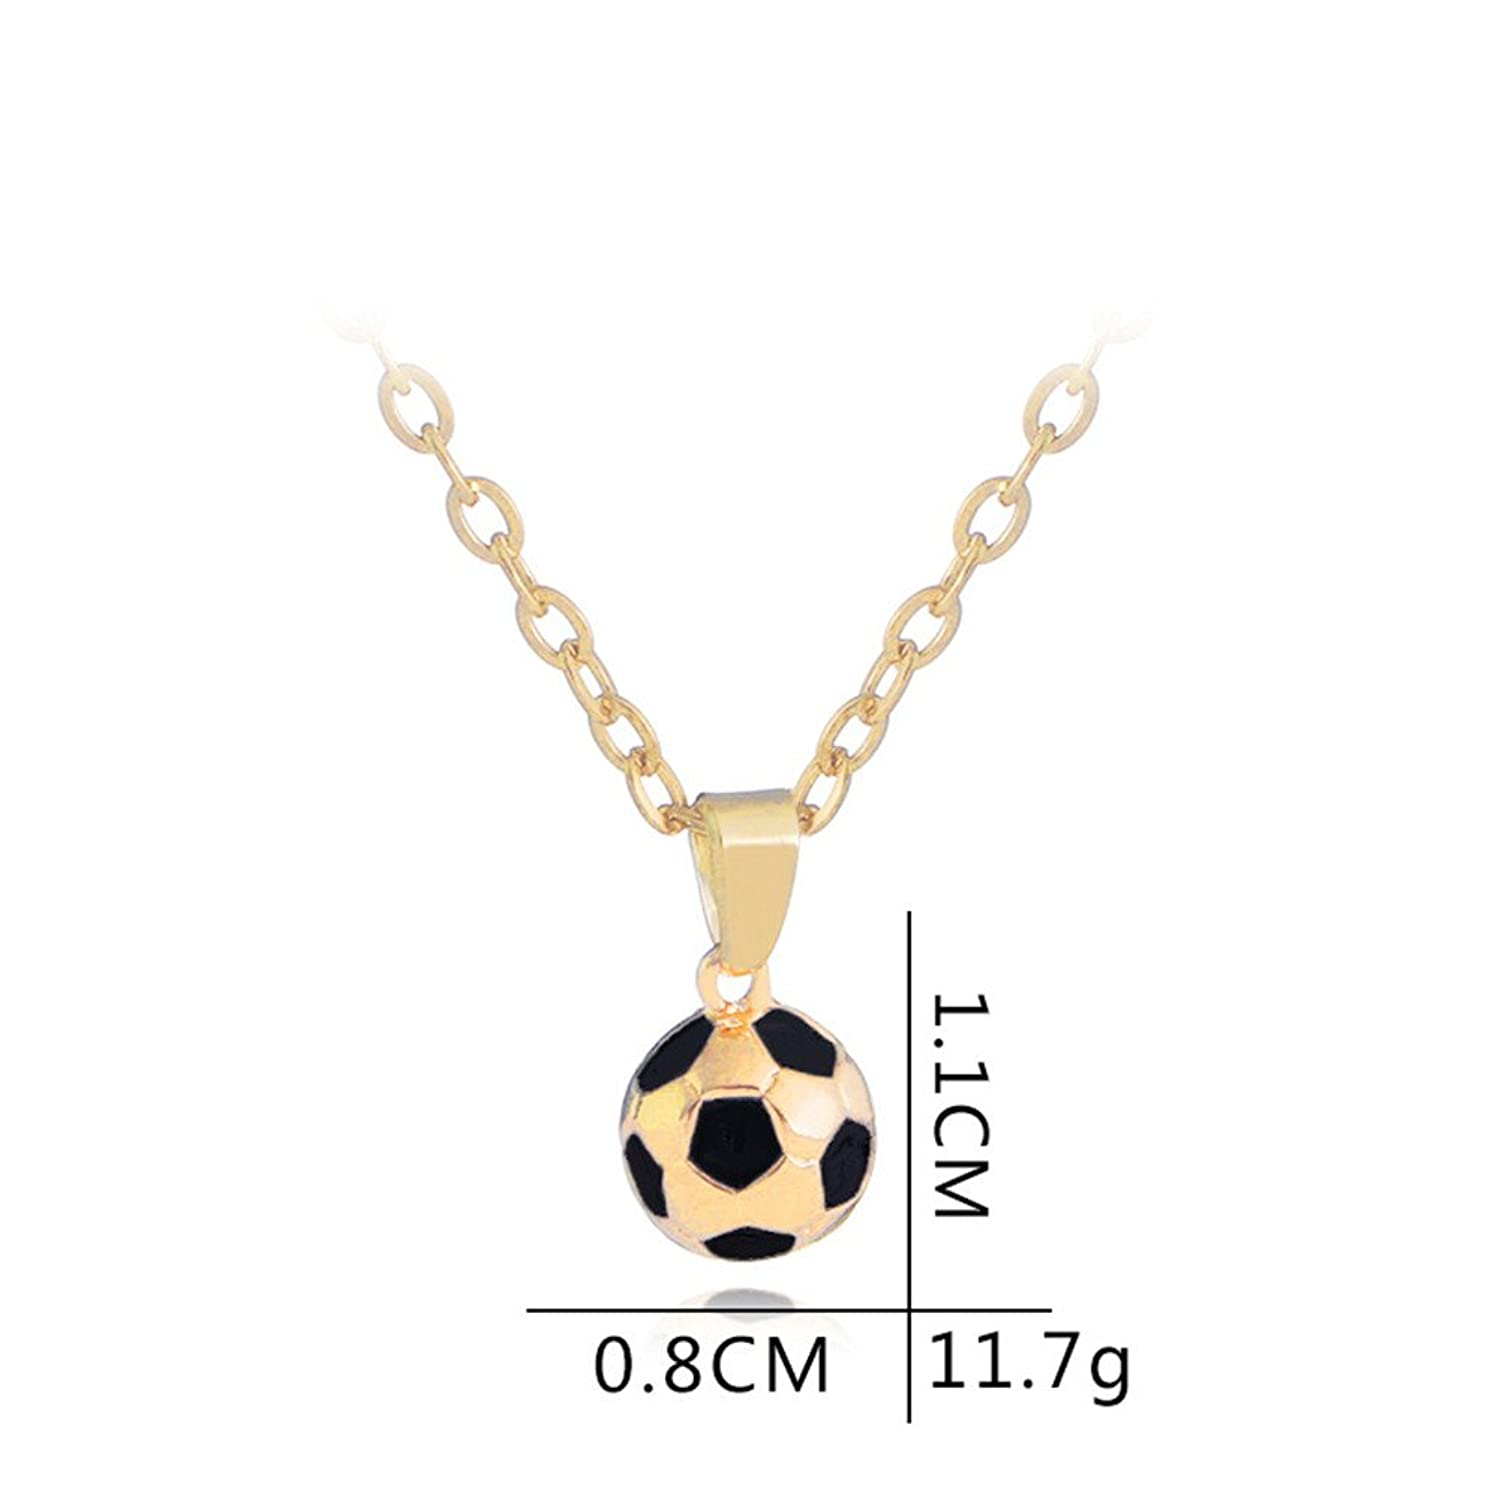 sterling silver ebay ball foot craft charm pendant football sport itm jewellery